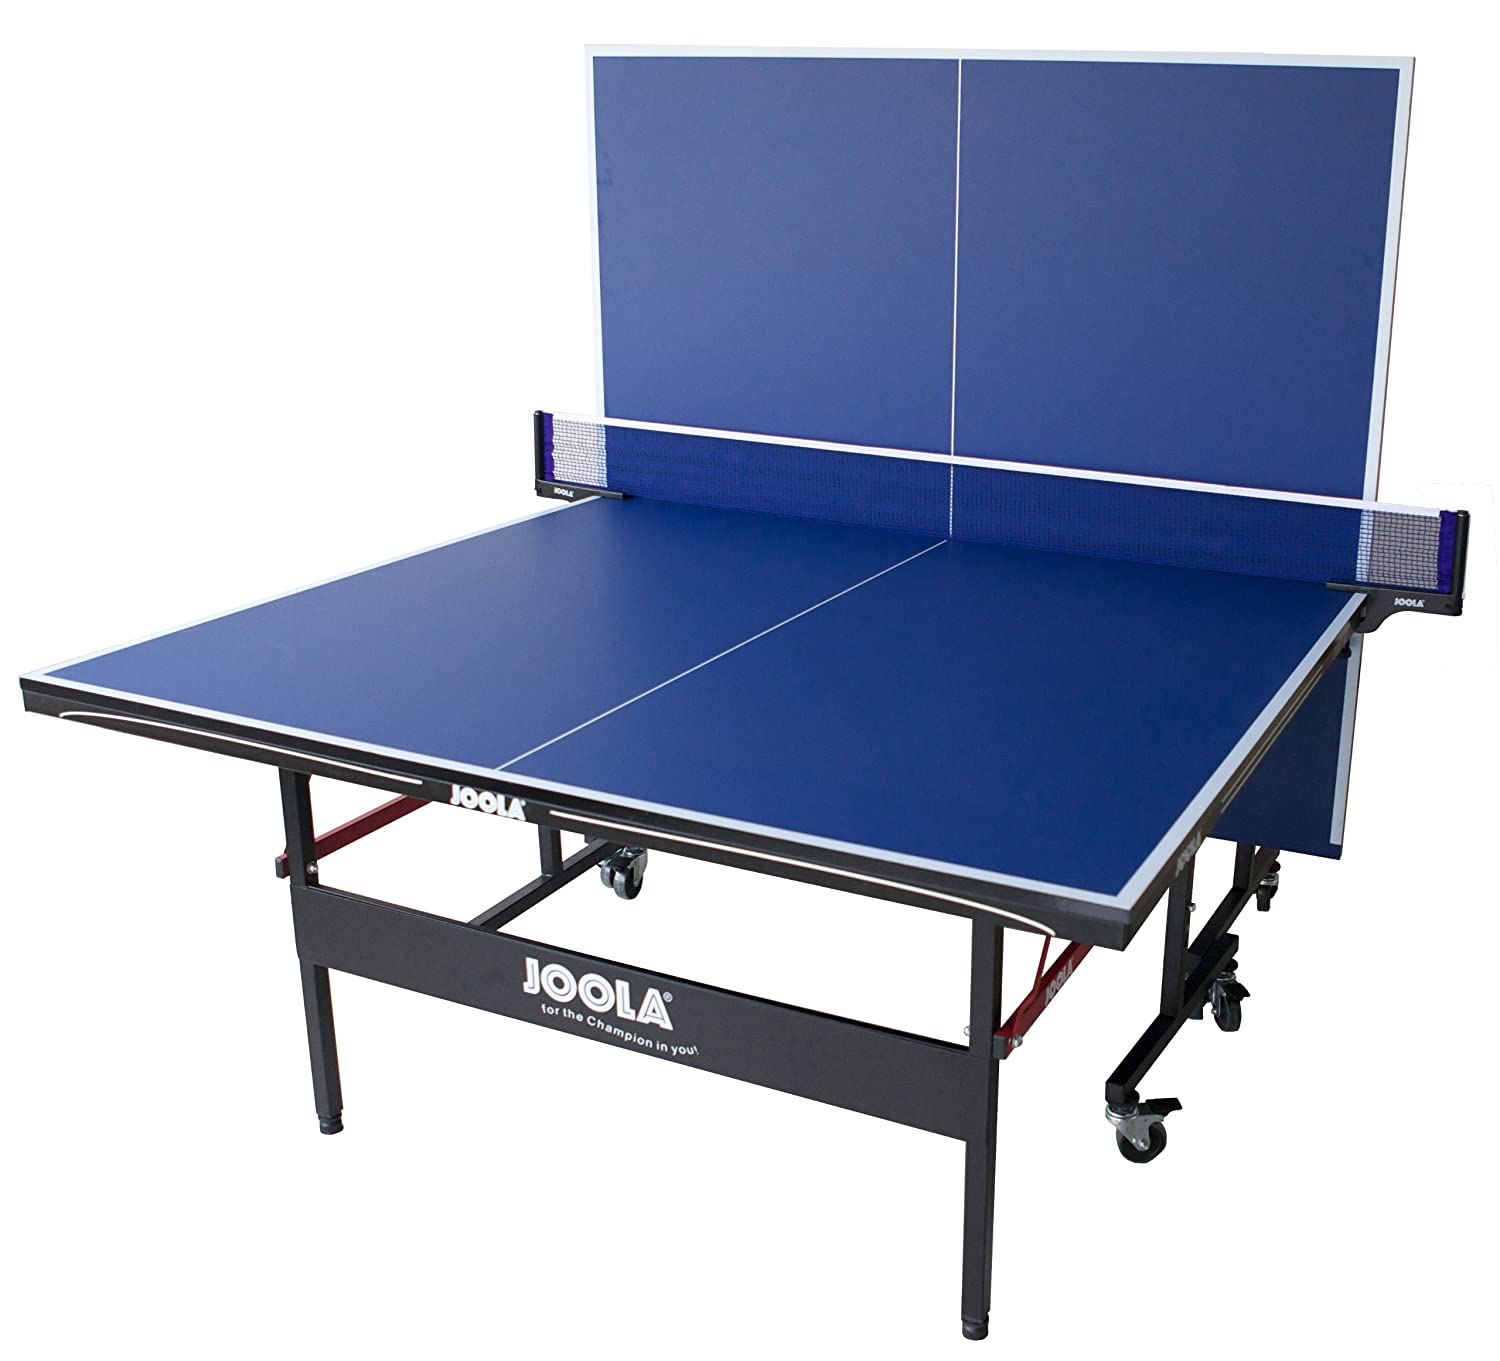 JOOLA Quattro Table Tennis Table with pact Net Set Nets